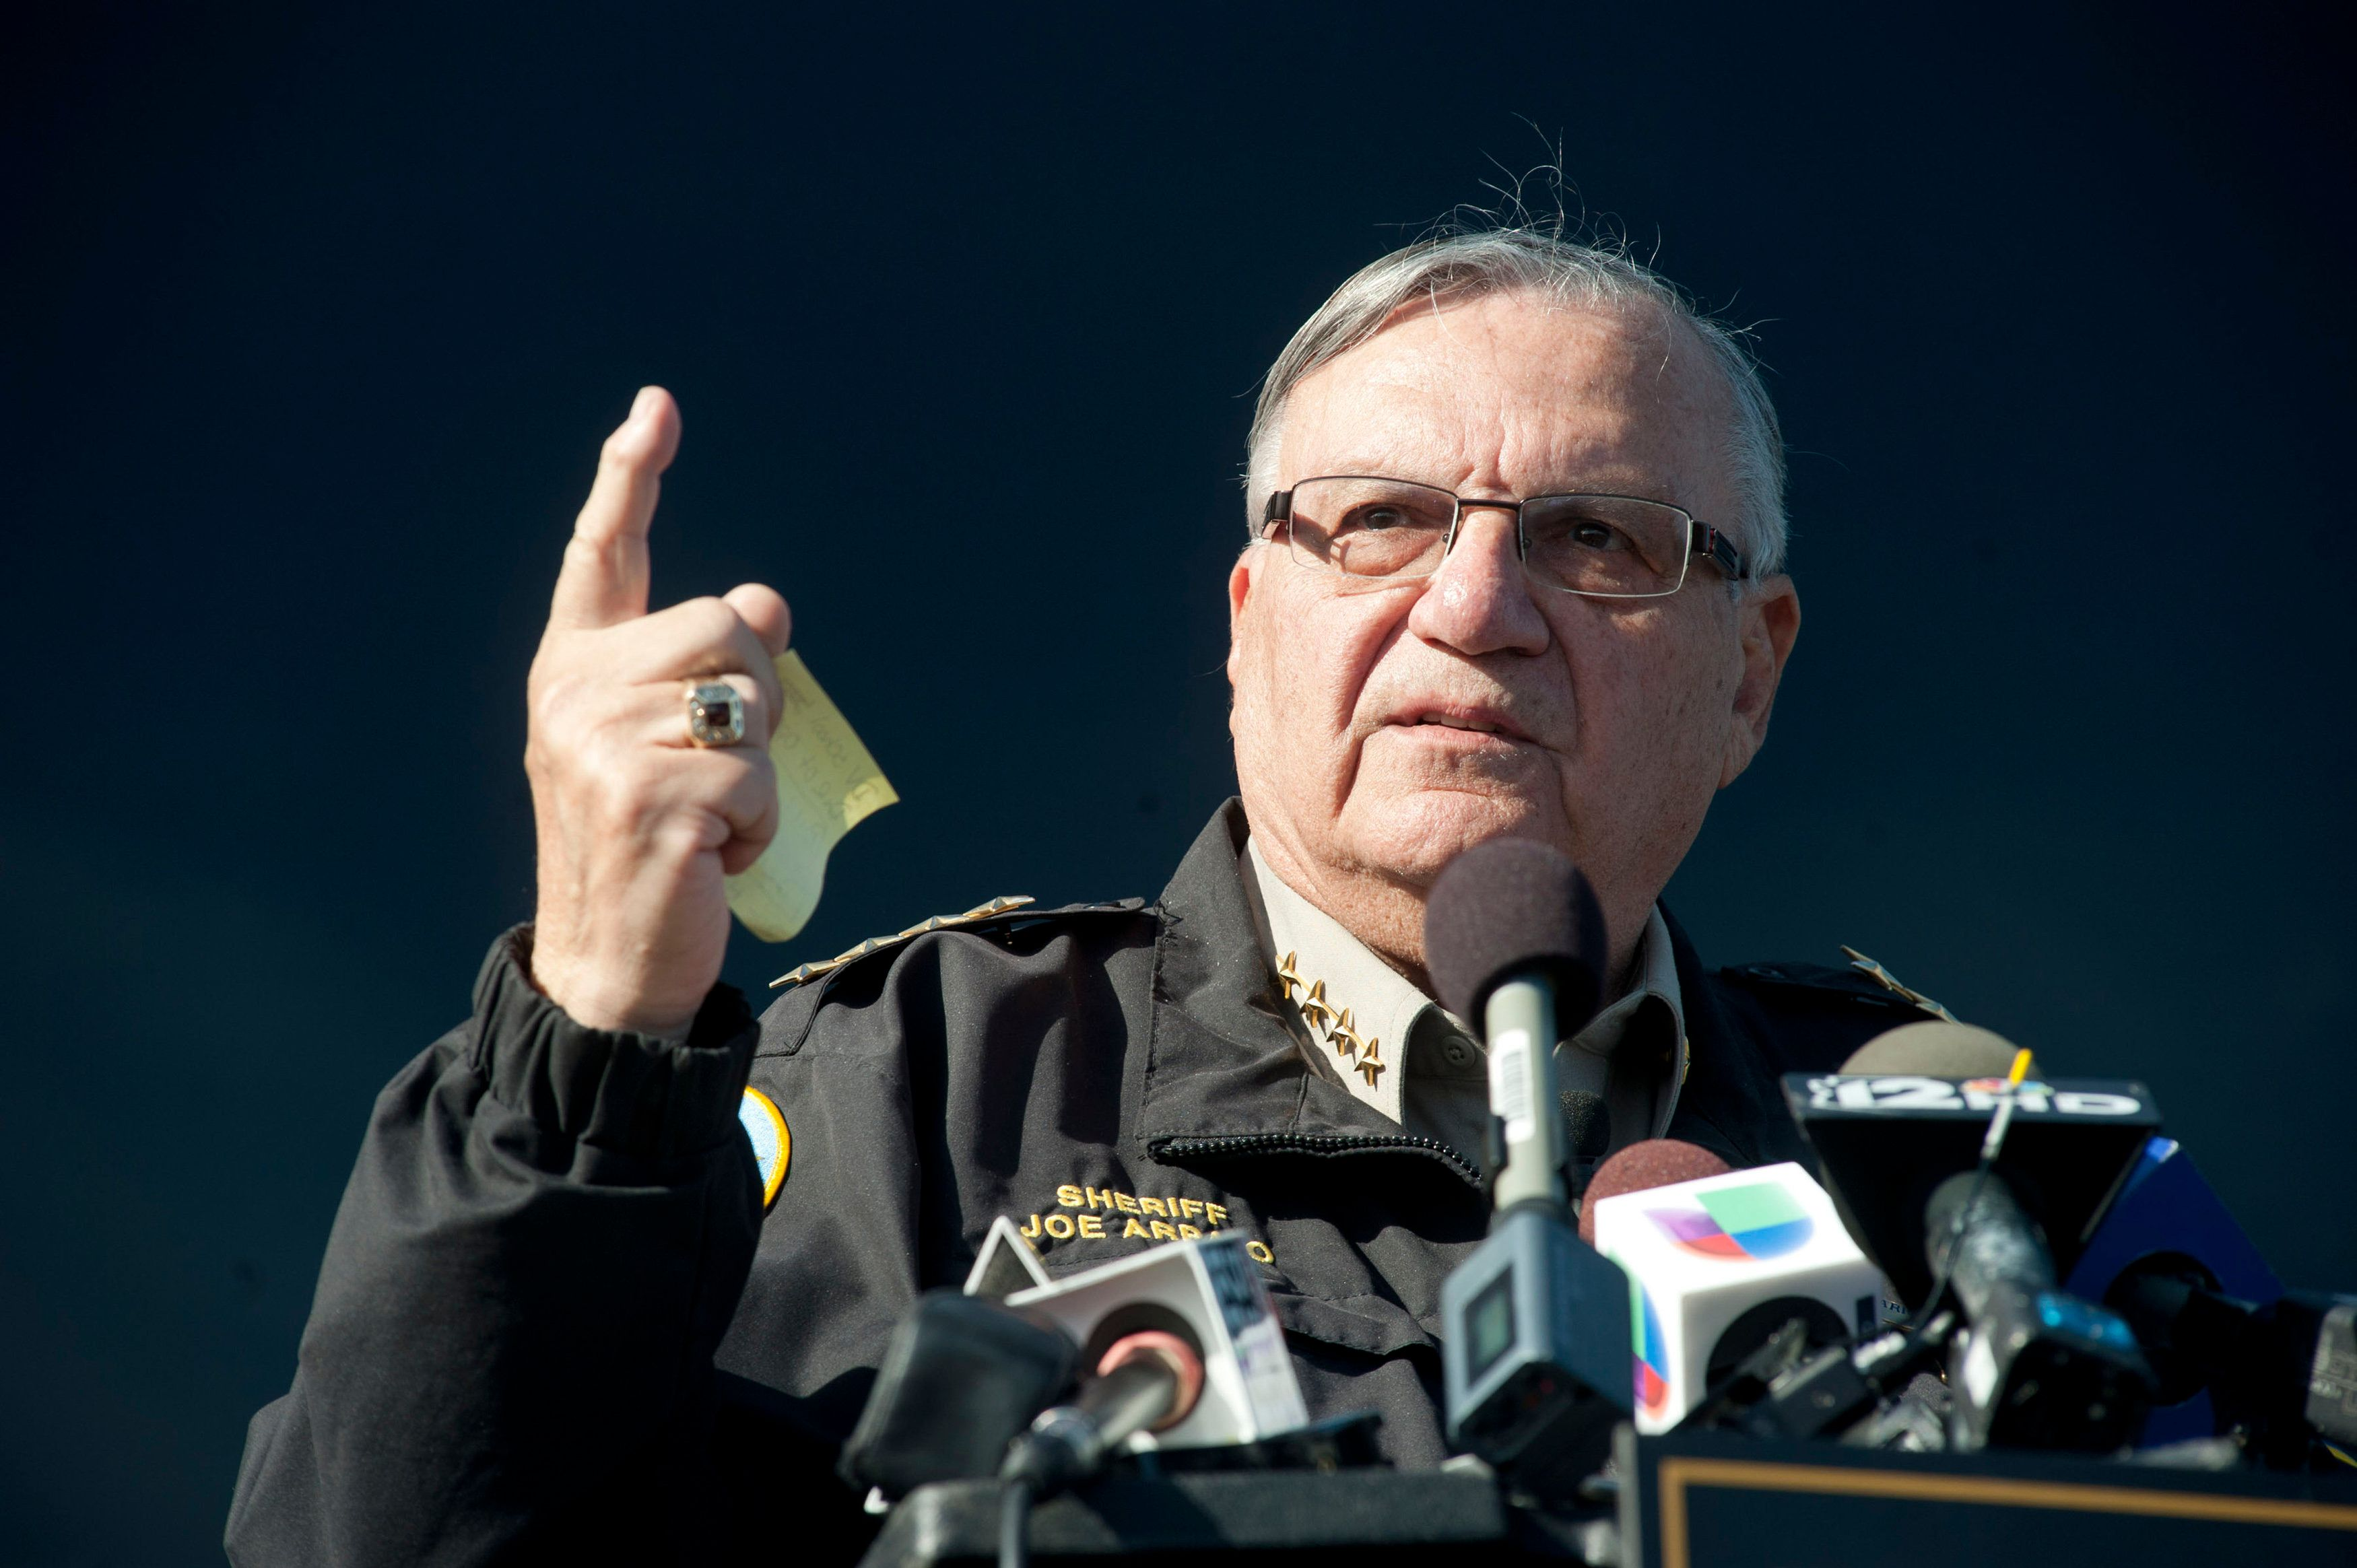 Maricopa County Sheriff Joe Arpaio announces newly launched program aimed at providing security around schools in Anthem, Arizona, January 9, 2013.  REUTERS/Laura Segall/File photo